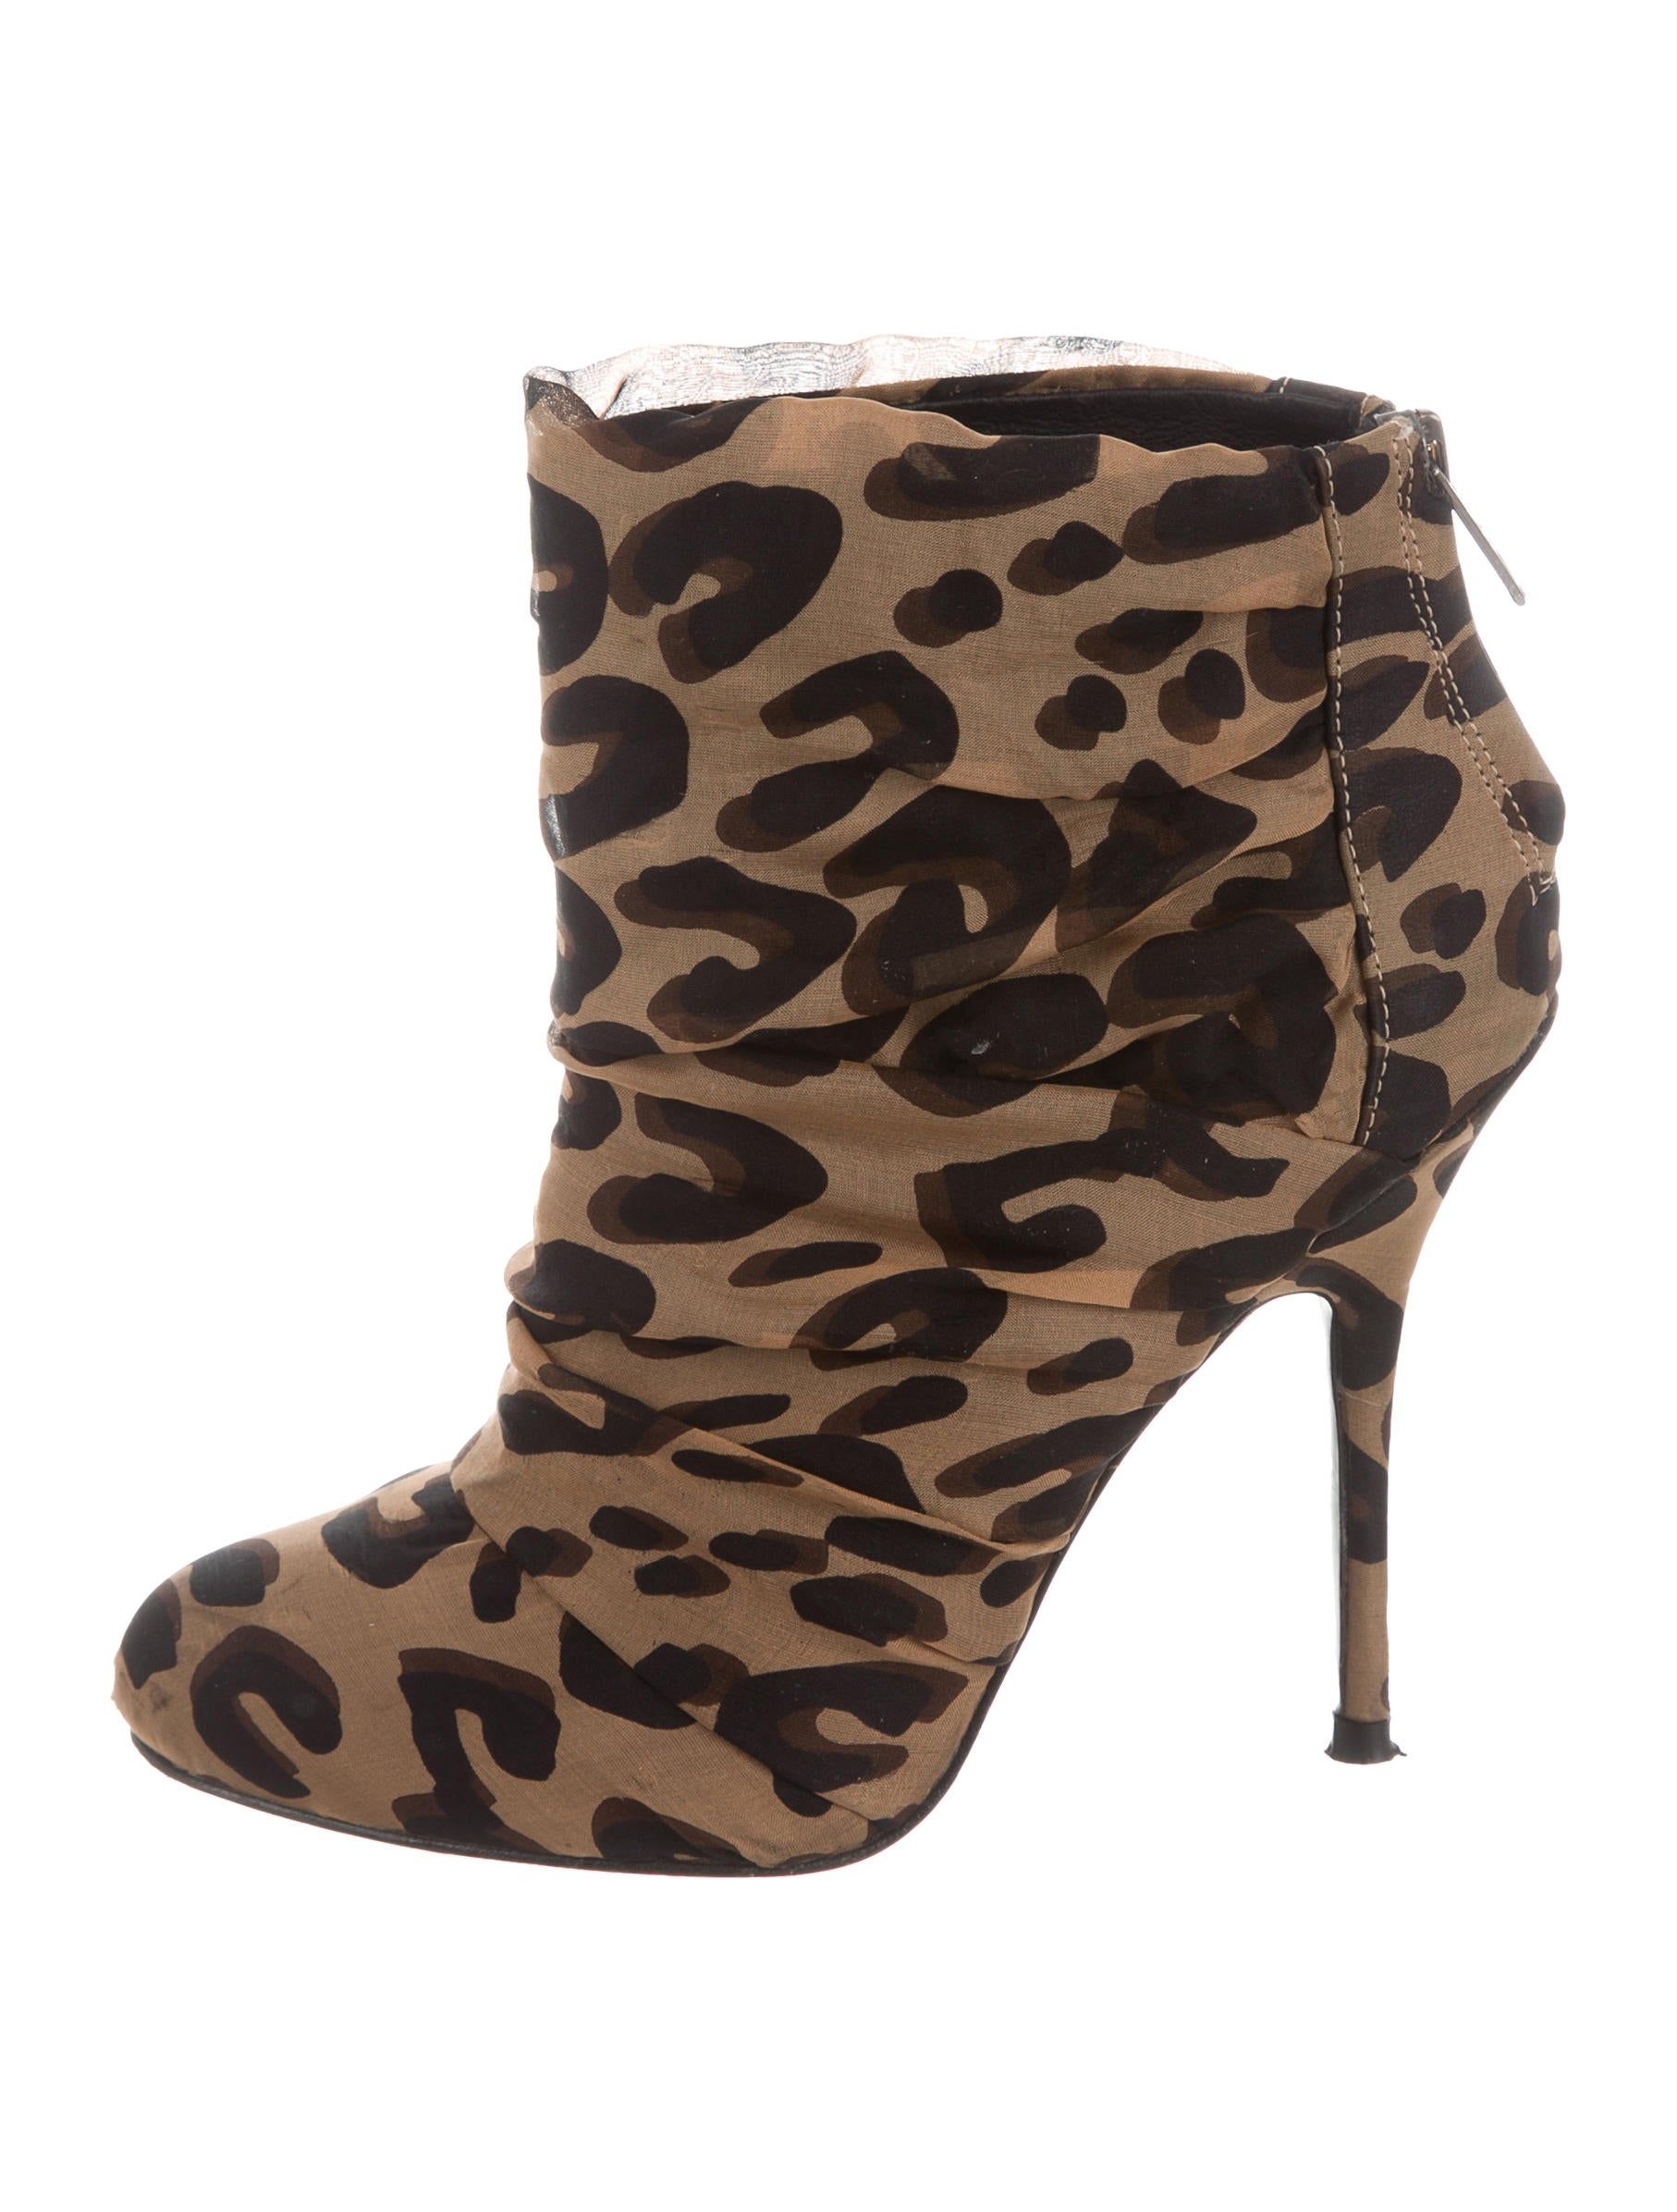 Shop for leopard ankle booties online at Target. Free shipping on purchases over $35 and save 5% every day with your Target REDcard.